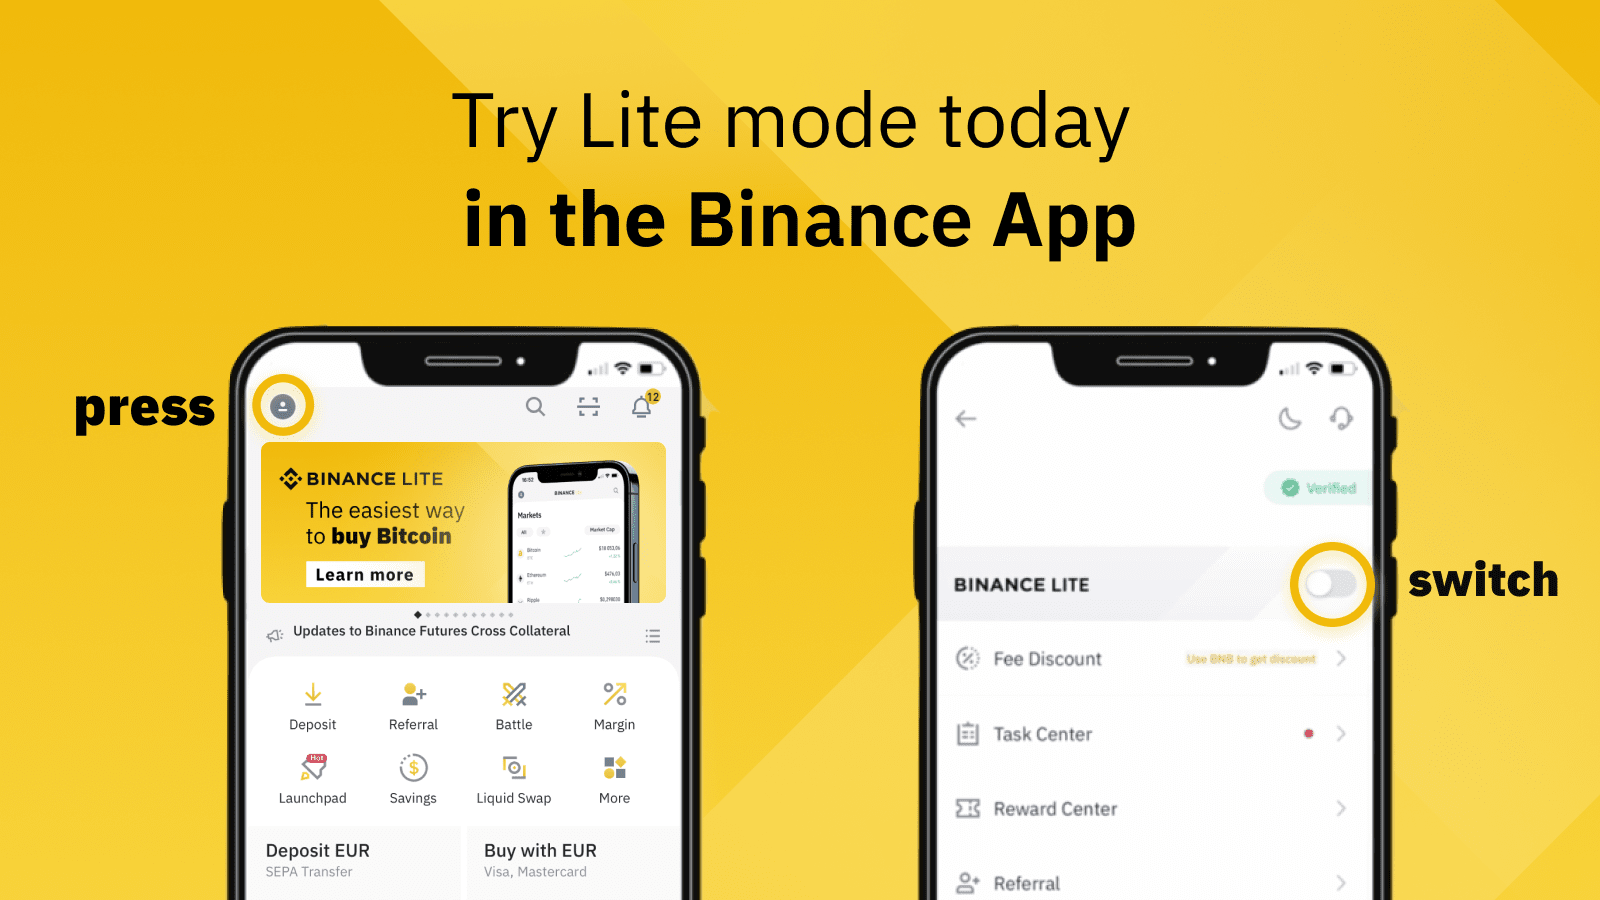 Binance Lite vs Professional: Which Mode Is Right For You?